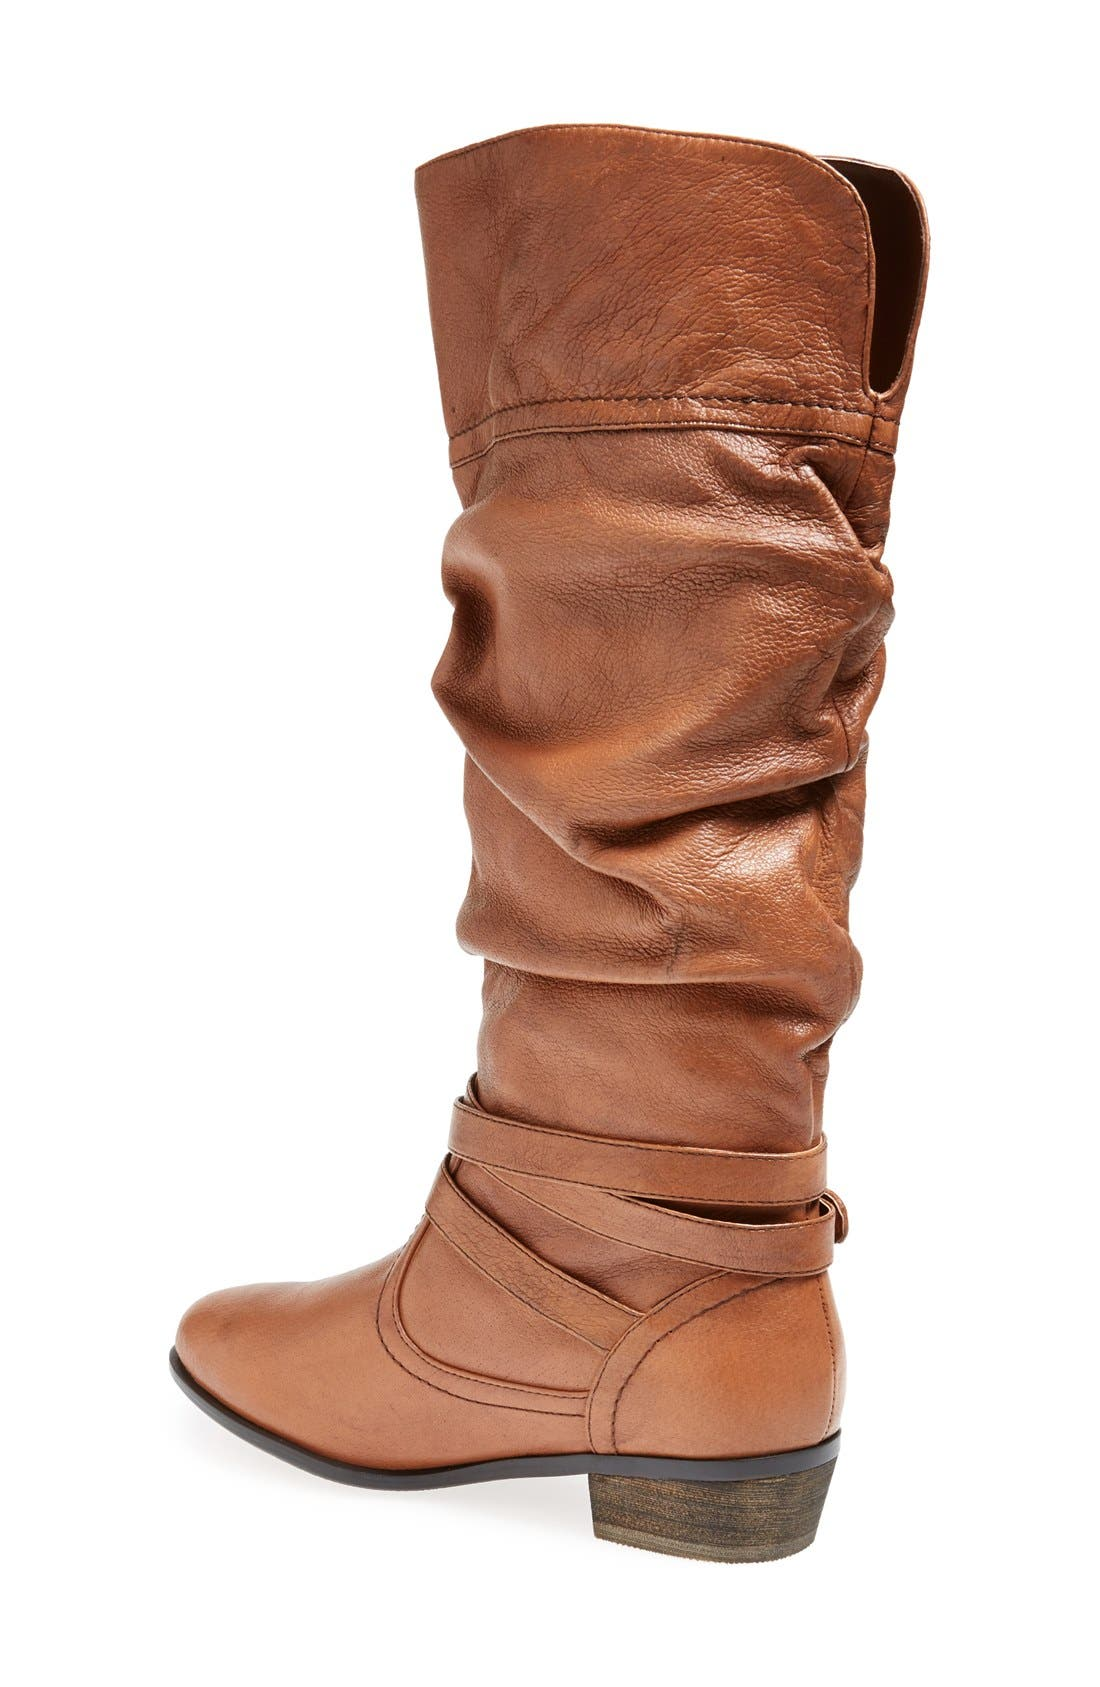 Alternate Image 2  - Steve Madden 'Casstrow' Boot (Wide Calf) (Women)